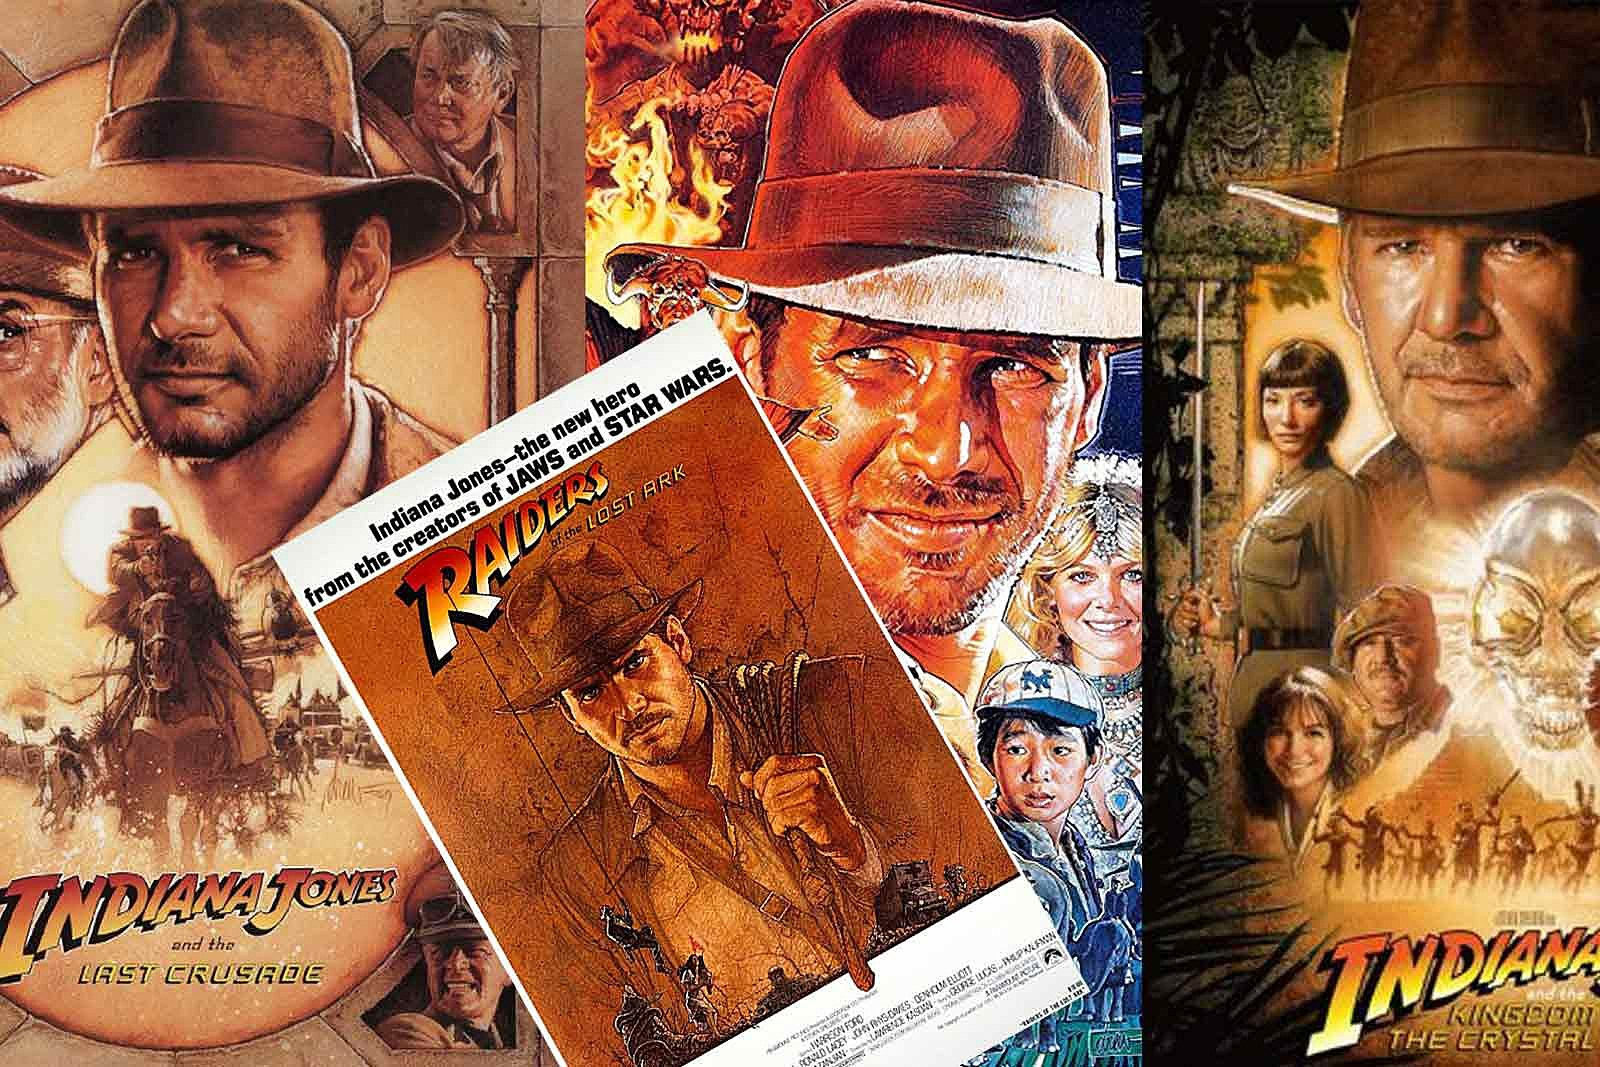 Indiana Jones Movies Ranked Worst to Best